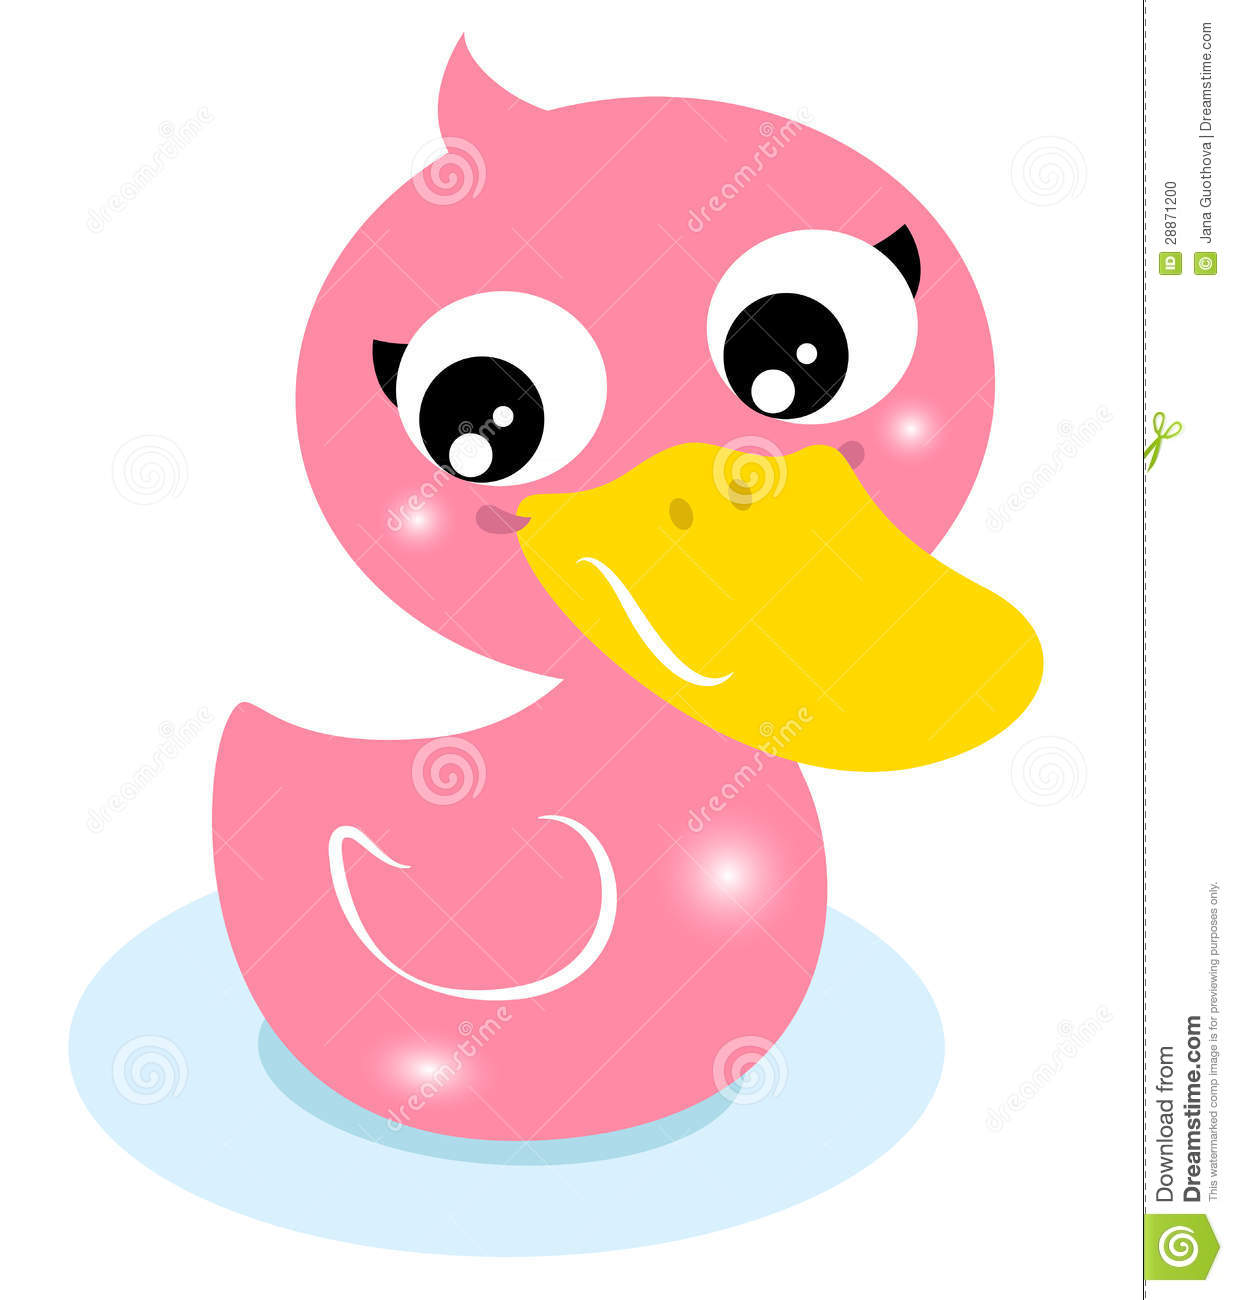 More similar stock images of ` Cute little pink rubber duck `